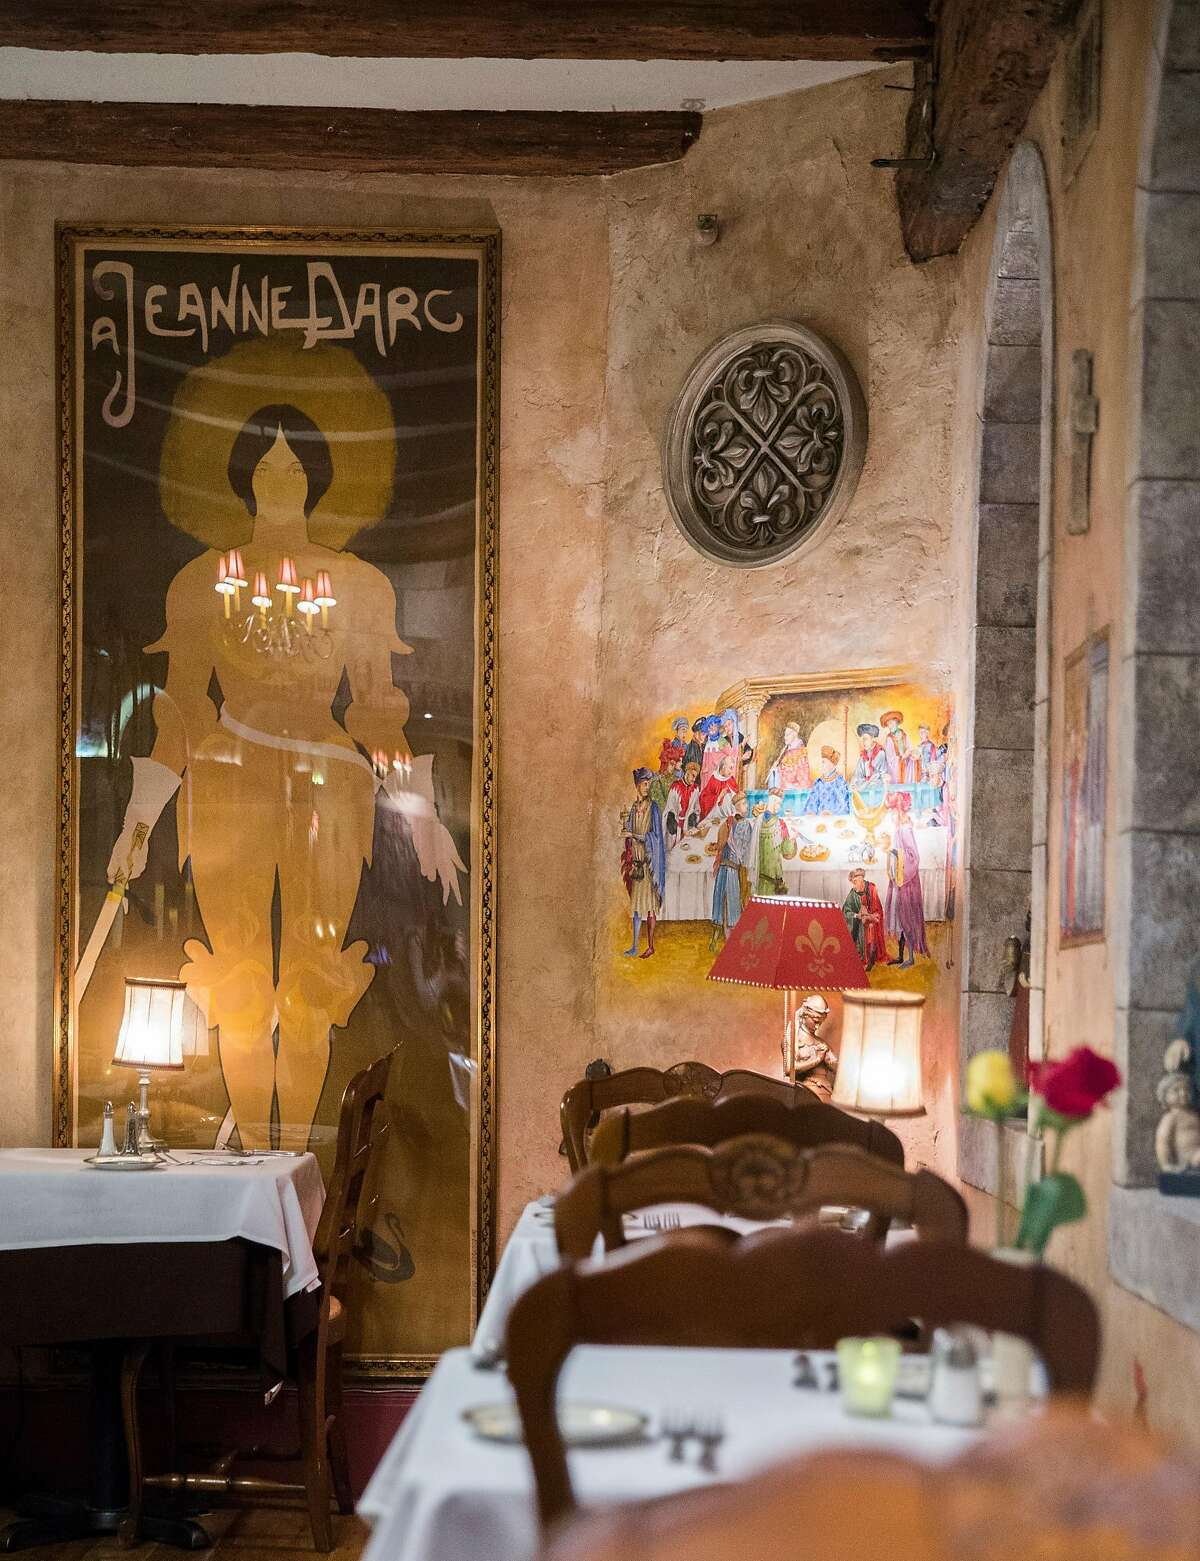 Joan of Arc is everywhere at the restaurant bearing her name. She is the patron saint of Orleans, the French town the Lamberts come from.